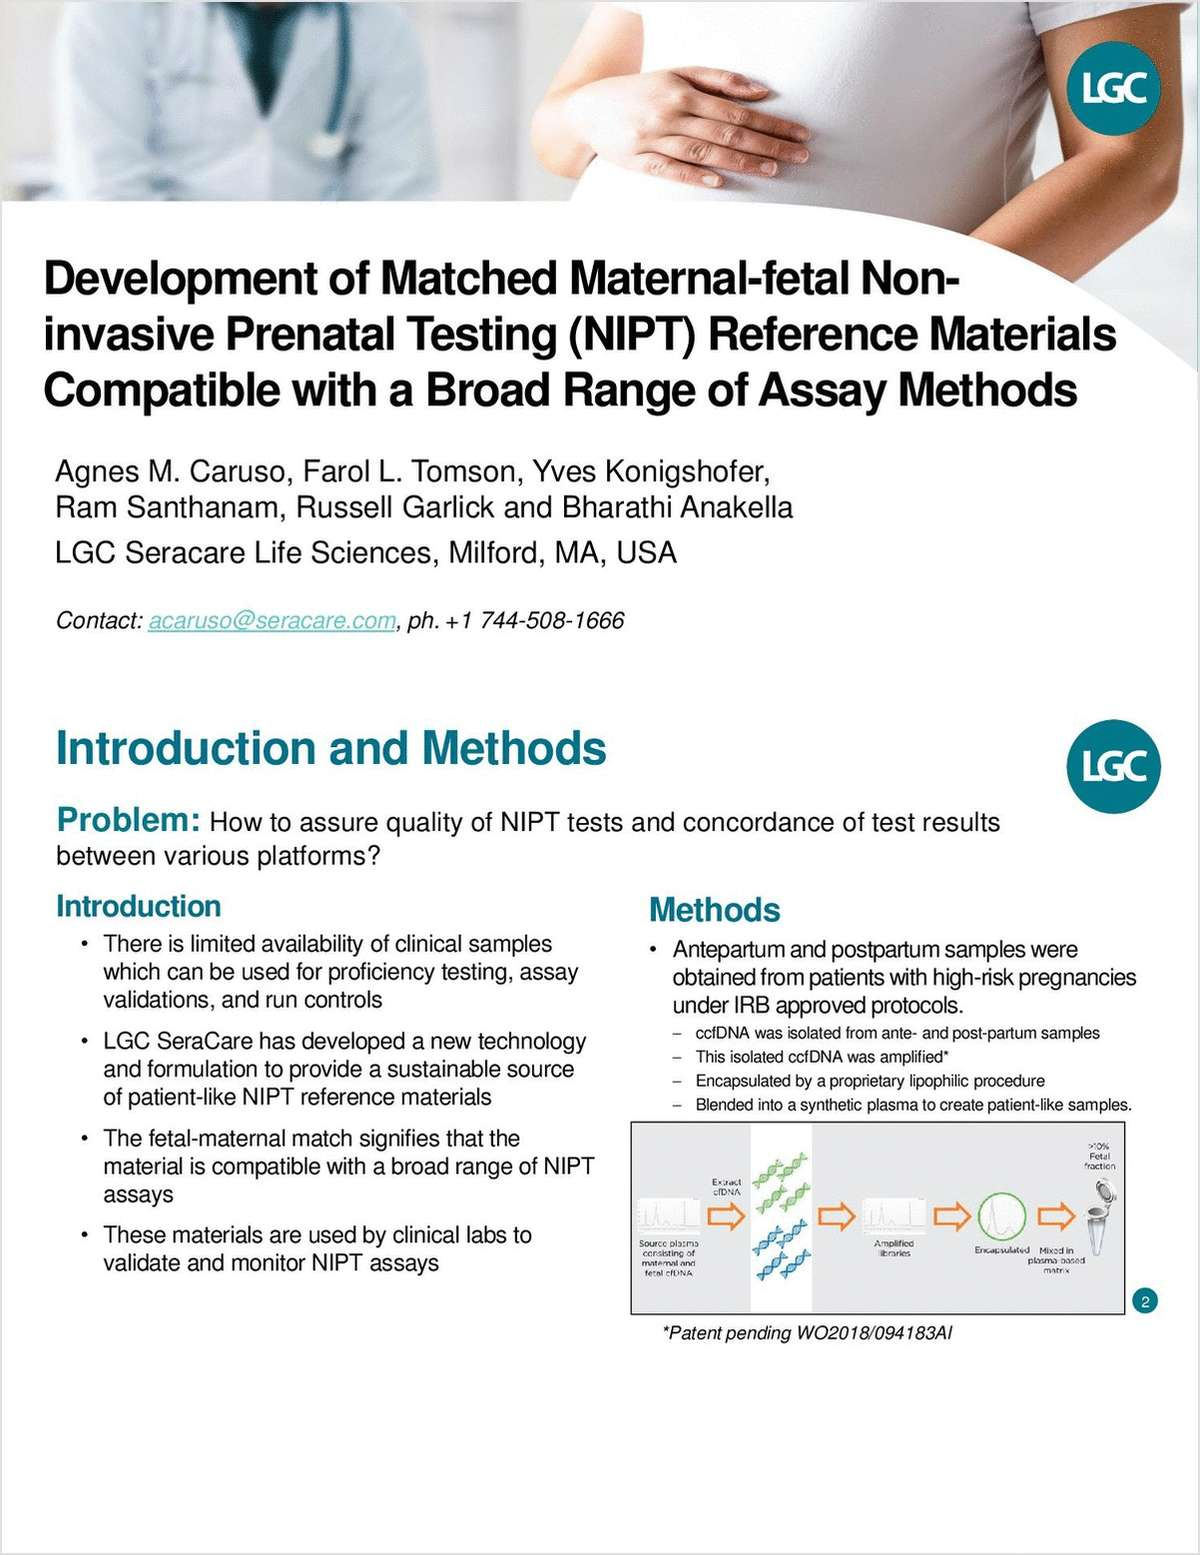 Development of Matched Maternal-Fetal Noninvasive Prenatal Testing (NIPT) Reference Materials Compatible with a Broad Range of Assay Methods